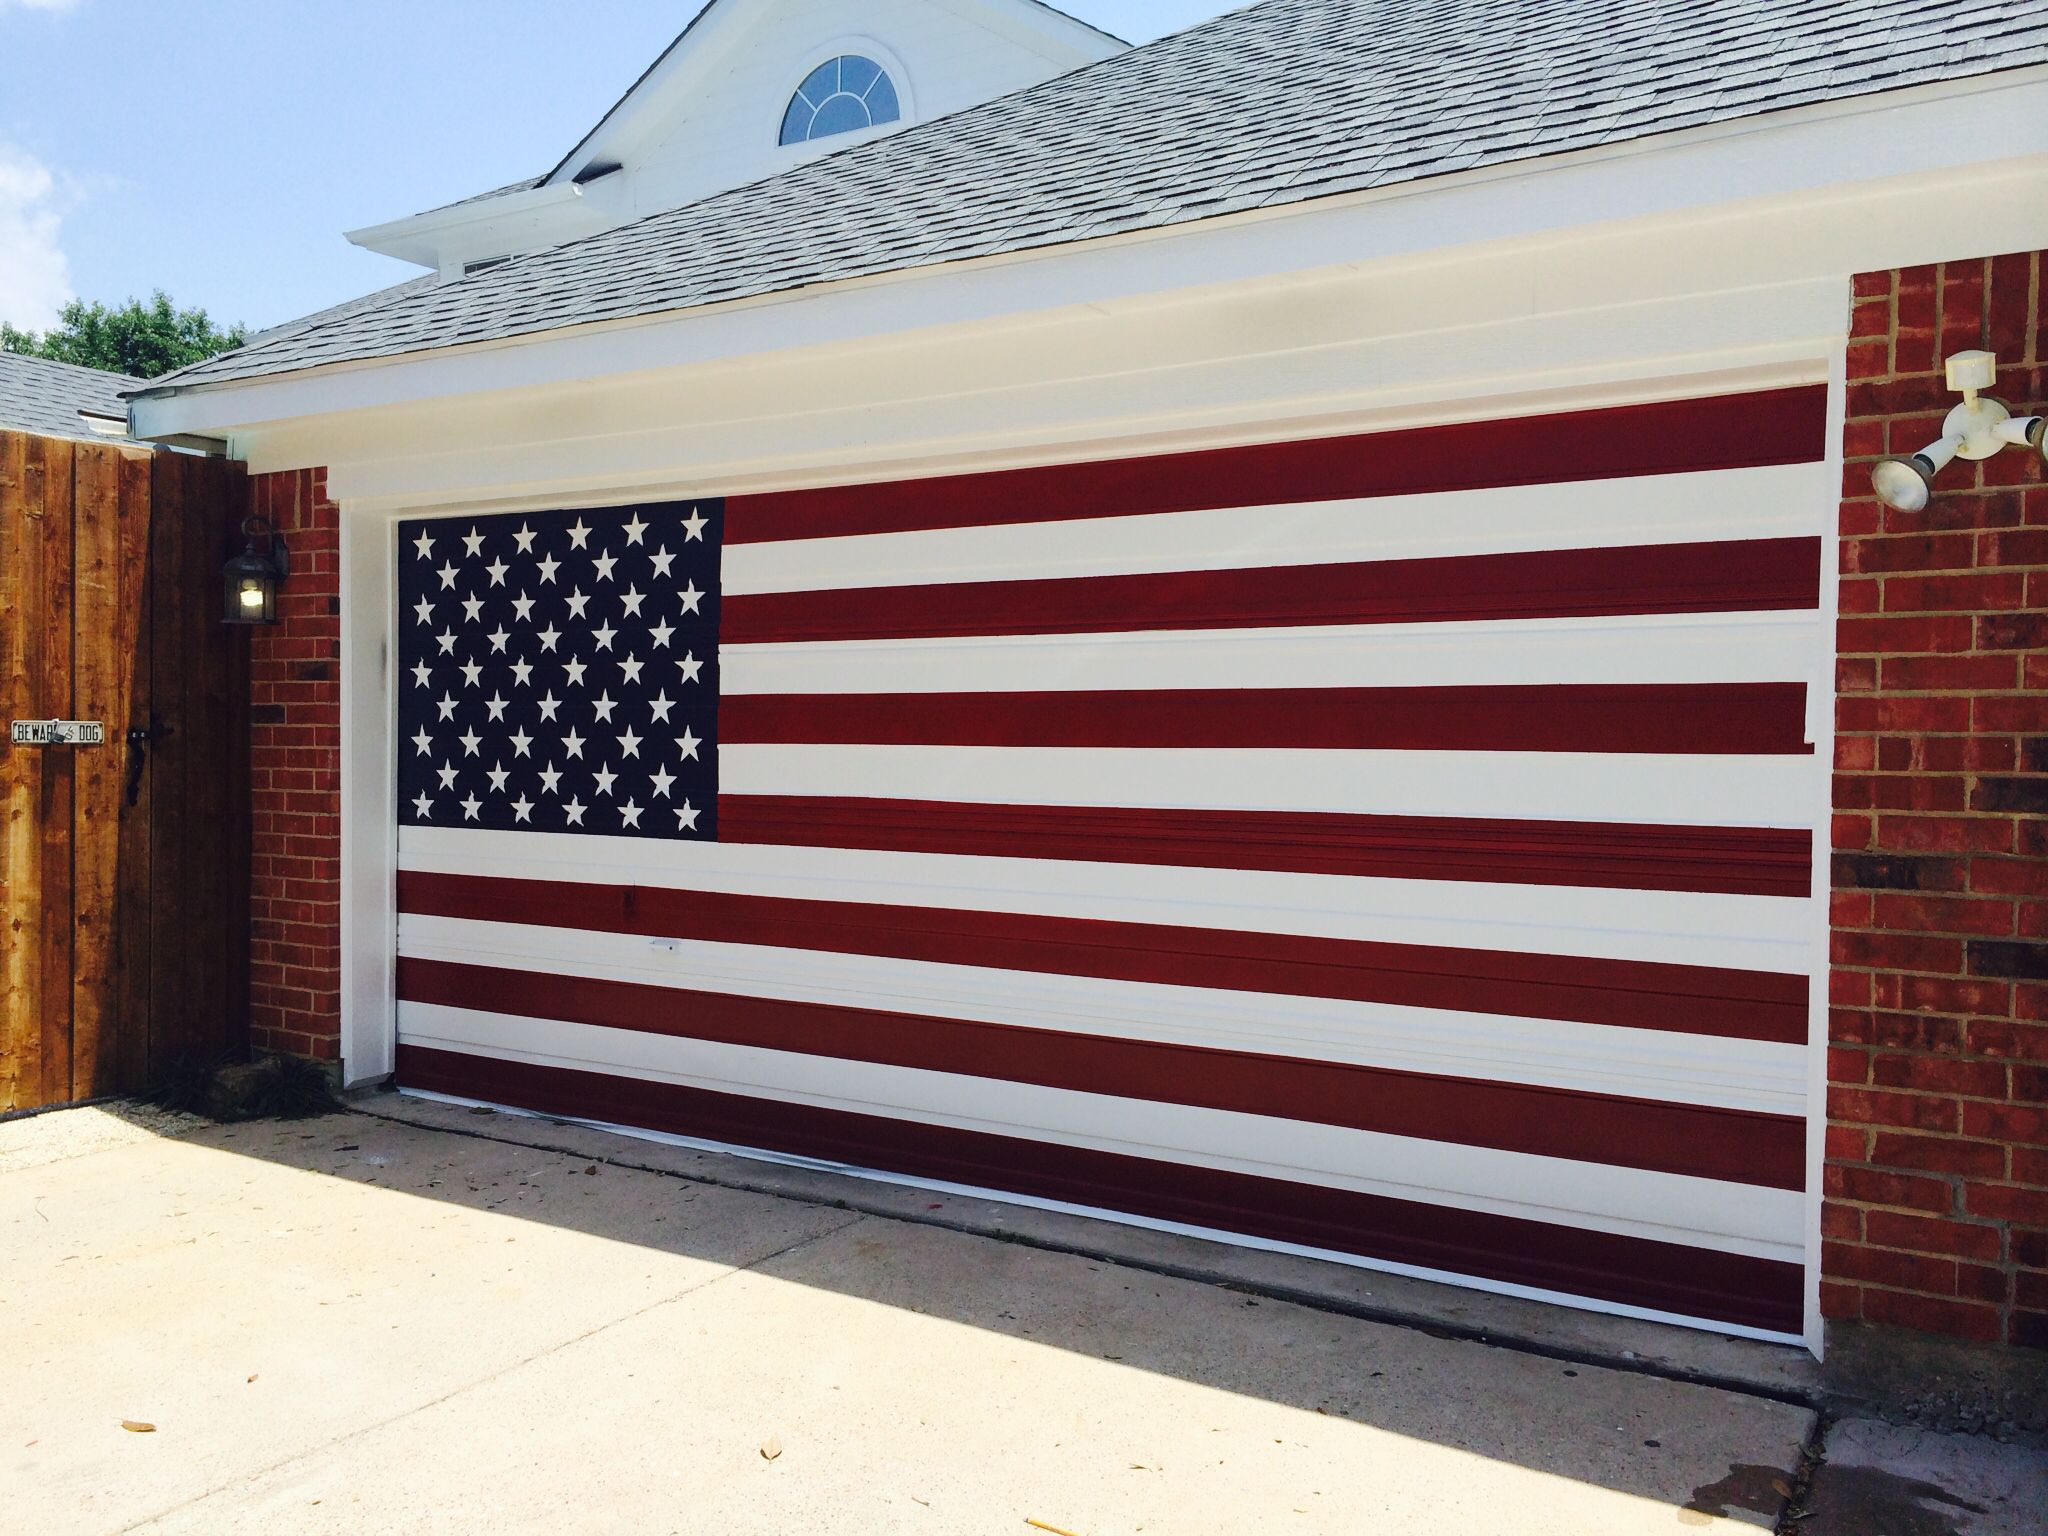 Patriotic Garage Door American Flag Backyard Projects Garage Doors Outdoor Decor